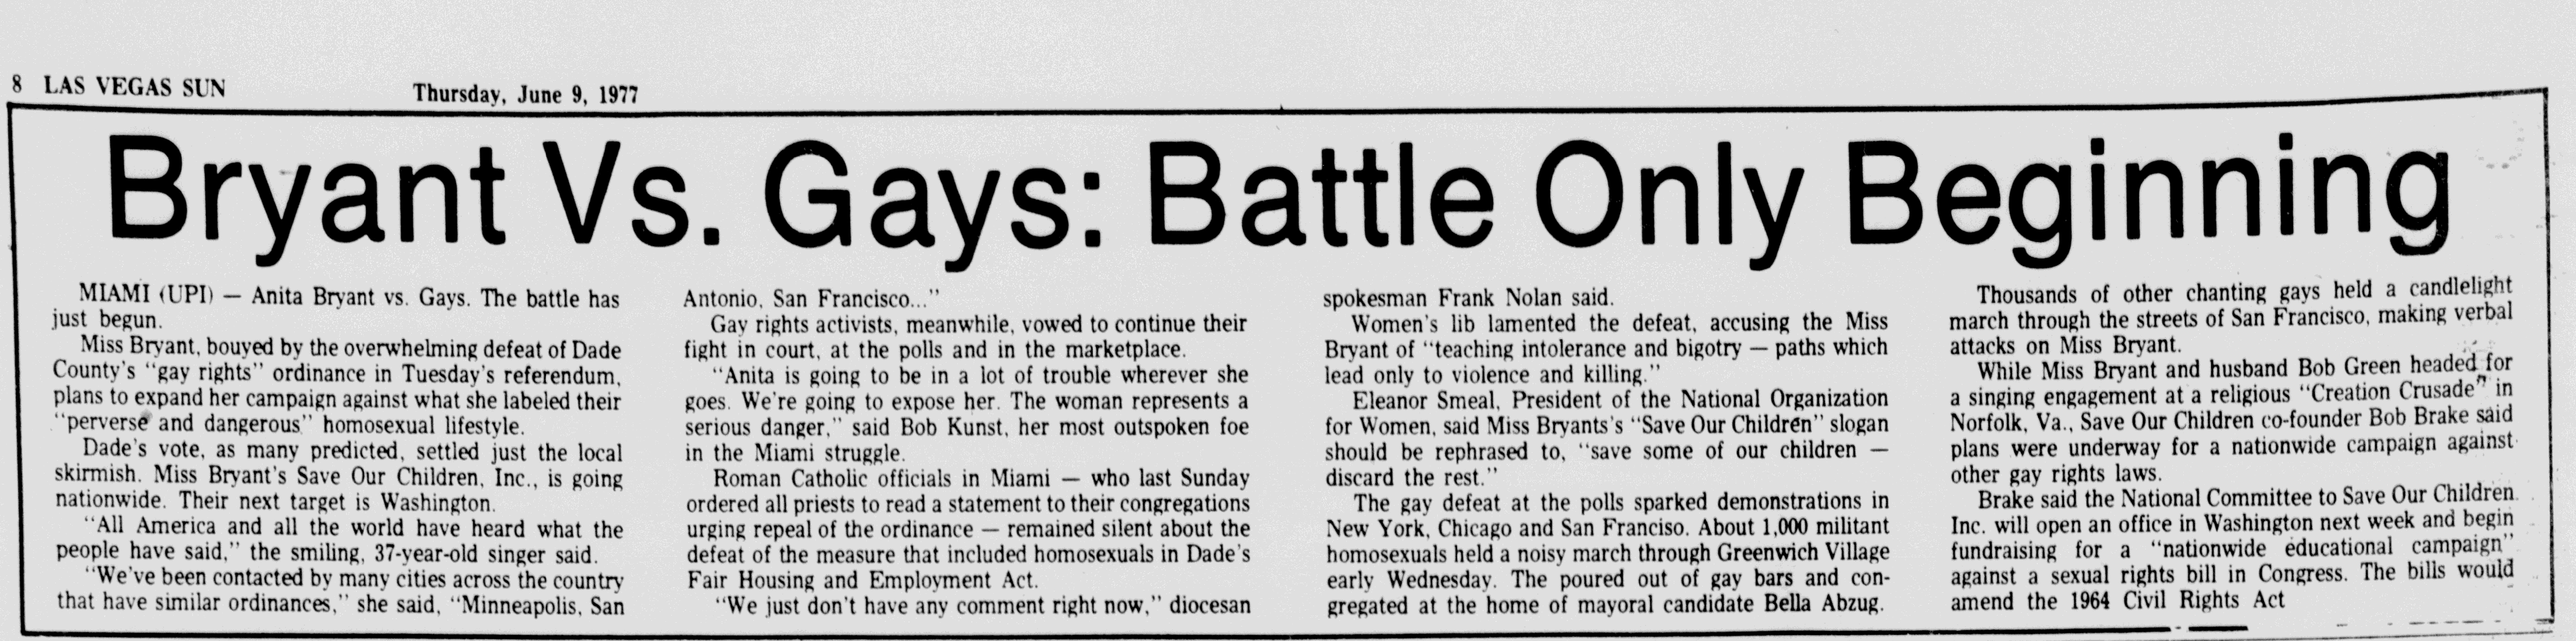 This article in the Las Vegas Sun (June 9, 1977) indicates that Bryant and her supporters believed the Miami law would lead to the repeal of legal protections for homosexuals in other cities.